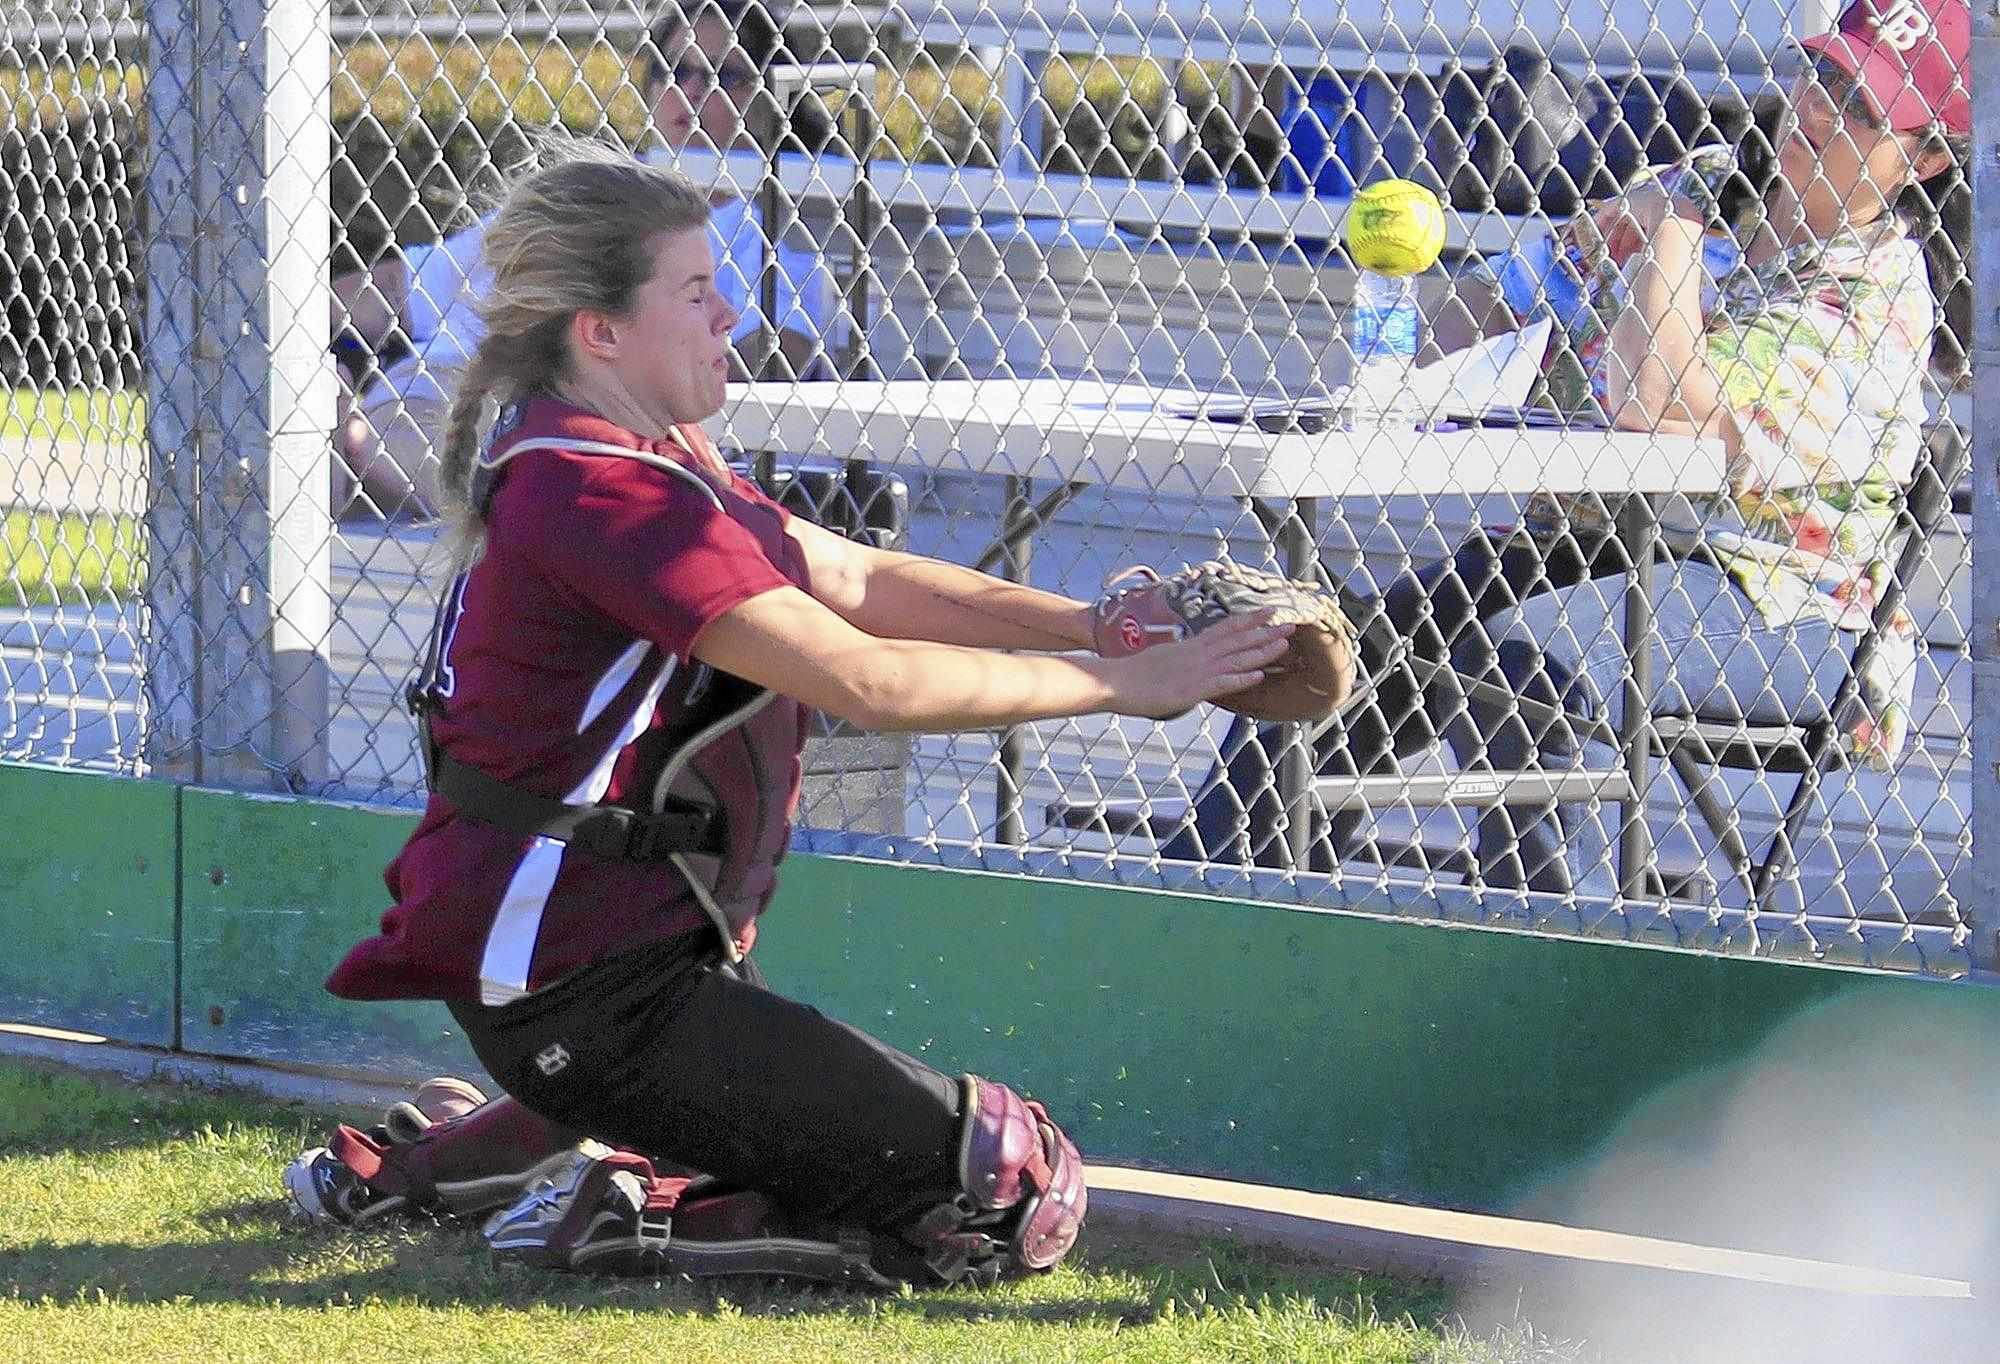 Laguna Beach High catcher McKena Collins hustles for a foul ball during an Orange Coast League softball game against Costa Mesa in Laguna Beach on Tuesday.